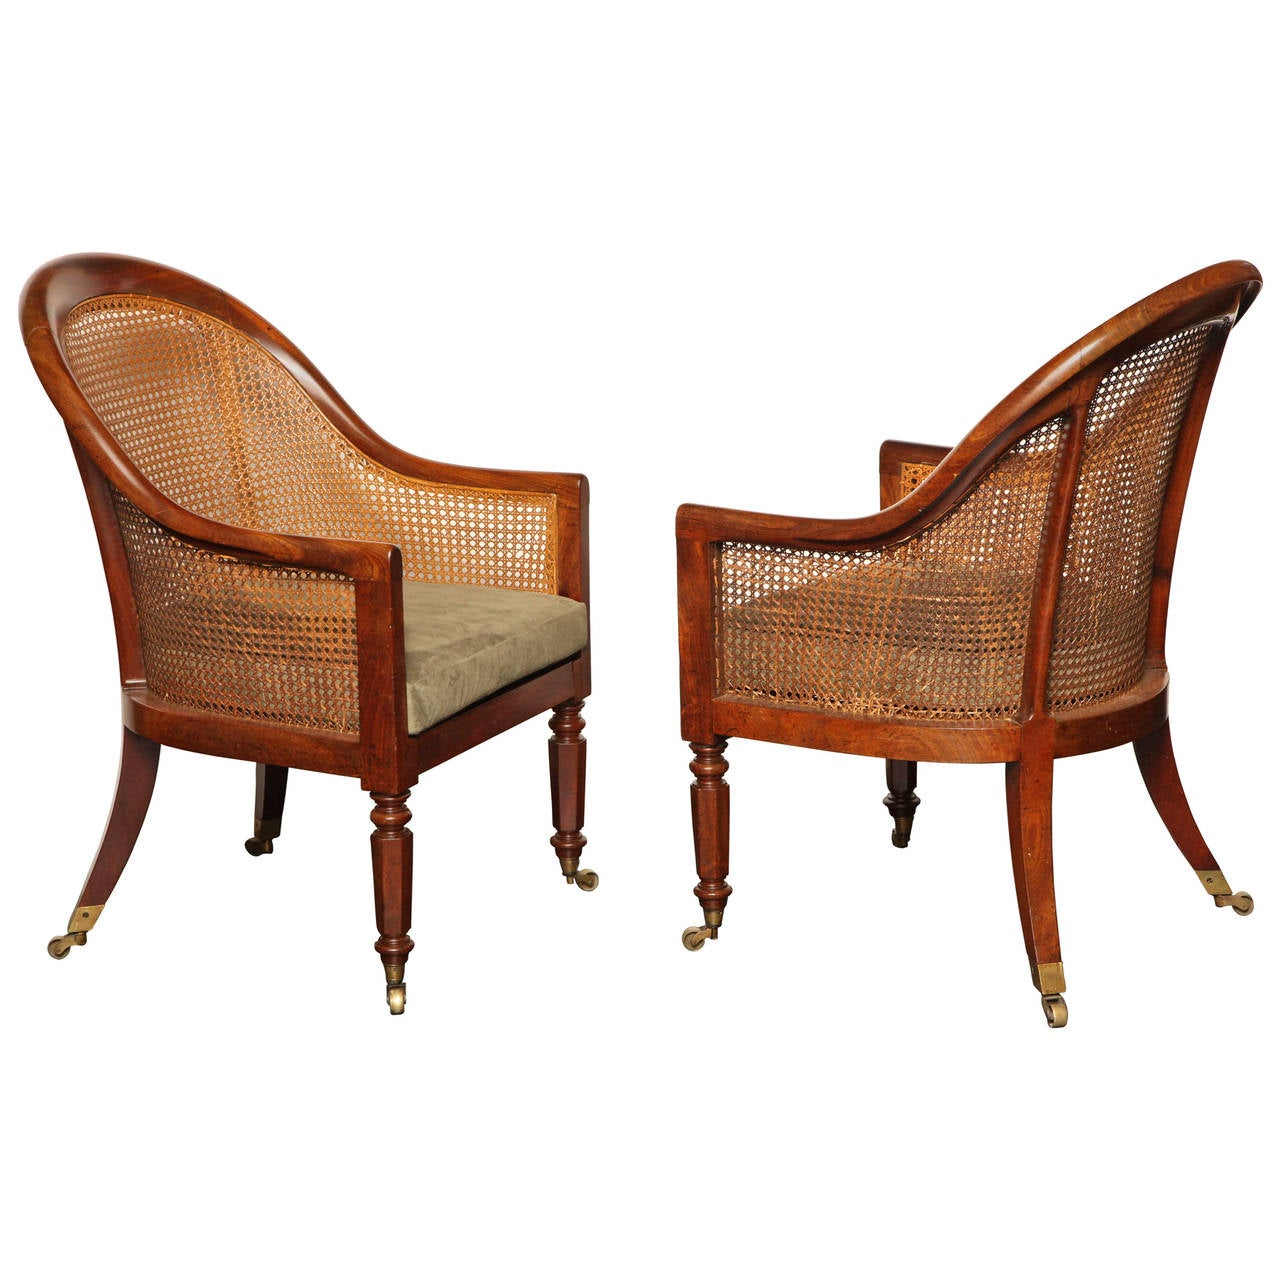 Pair of Early 19th Century English, Mahogany and Caned Armchairs